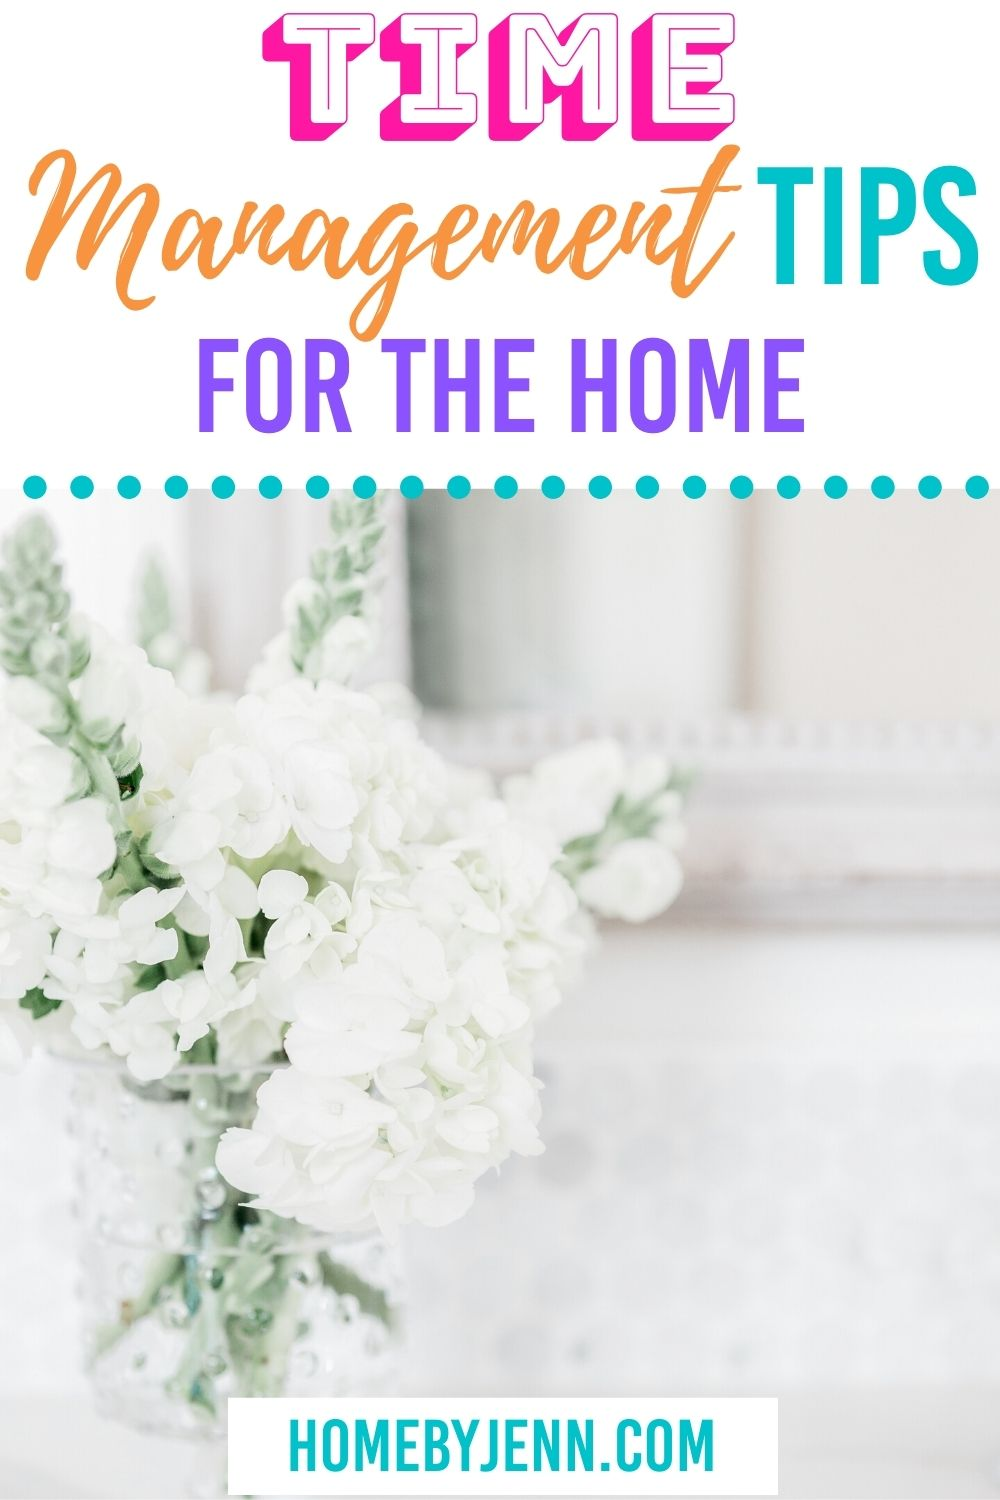 If you are short on time then you need to check out this post. Jenn shares 10 things you can do in 20-minutes that will save your day. She also put a list of 20 things you can do in 20 minutes that you can download for free. Click through to learn more! #timemanagement #timemanagementtips #timesavingtips #timesaving #priorities #getmoredone #momhacks via @homebyjenn